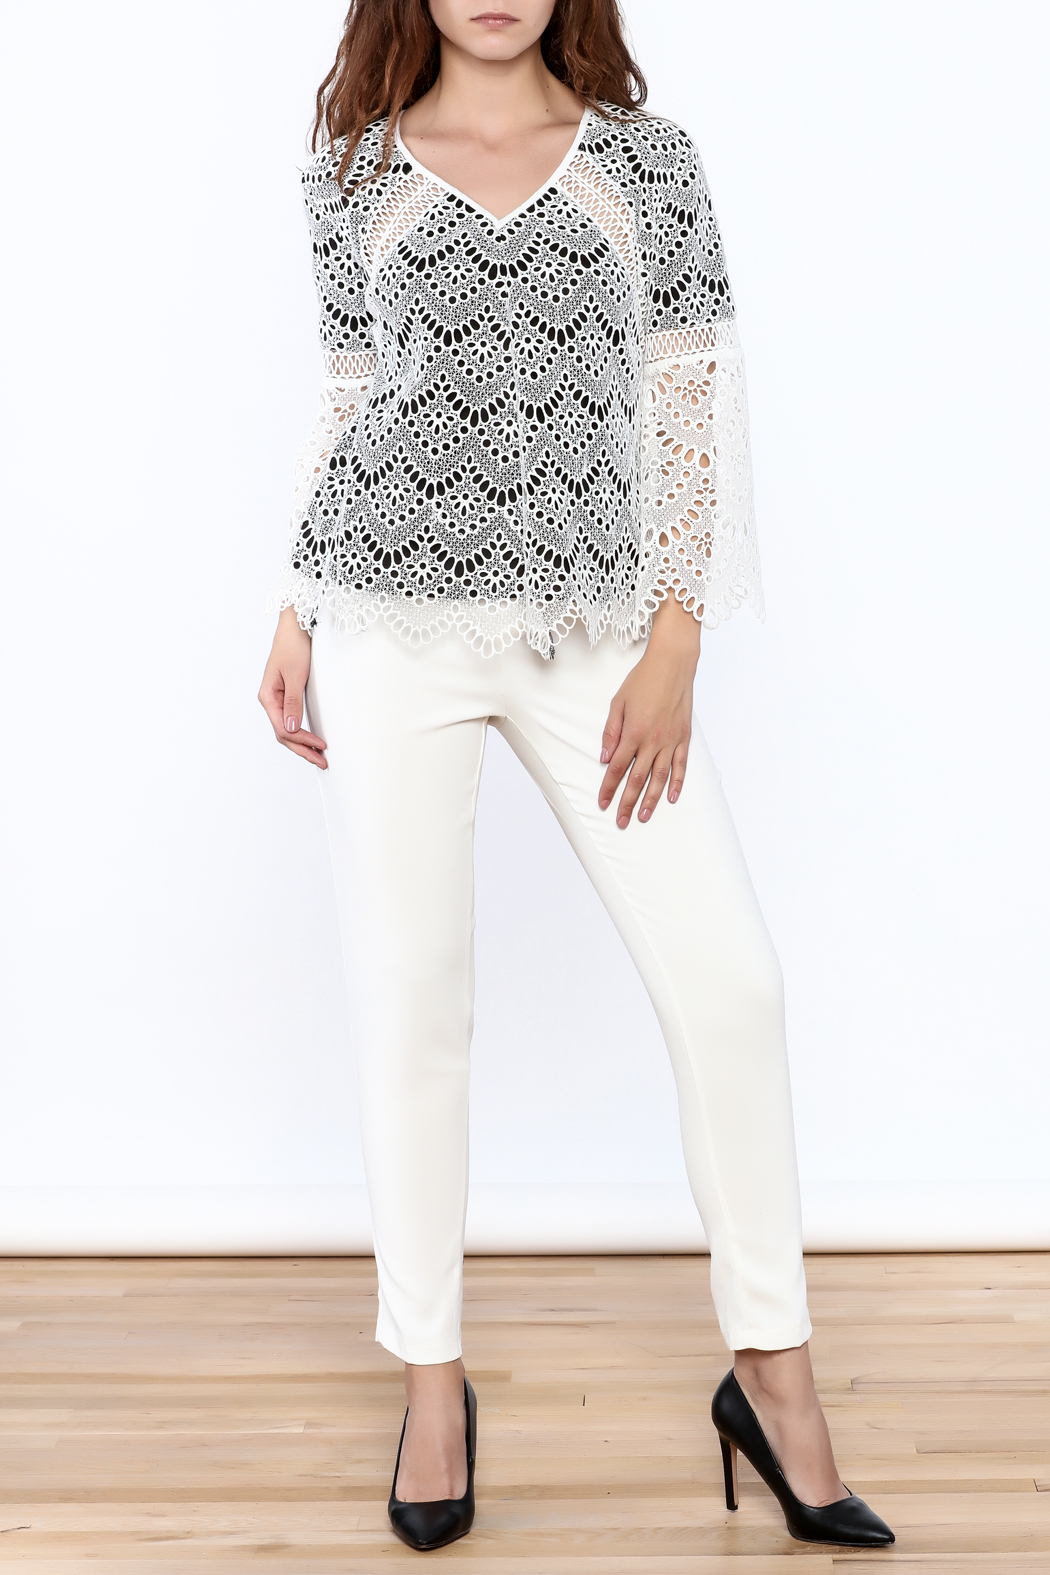 KAS New York Semi Lined Lace Top - Front Full Image